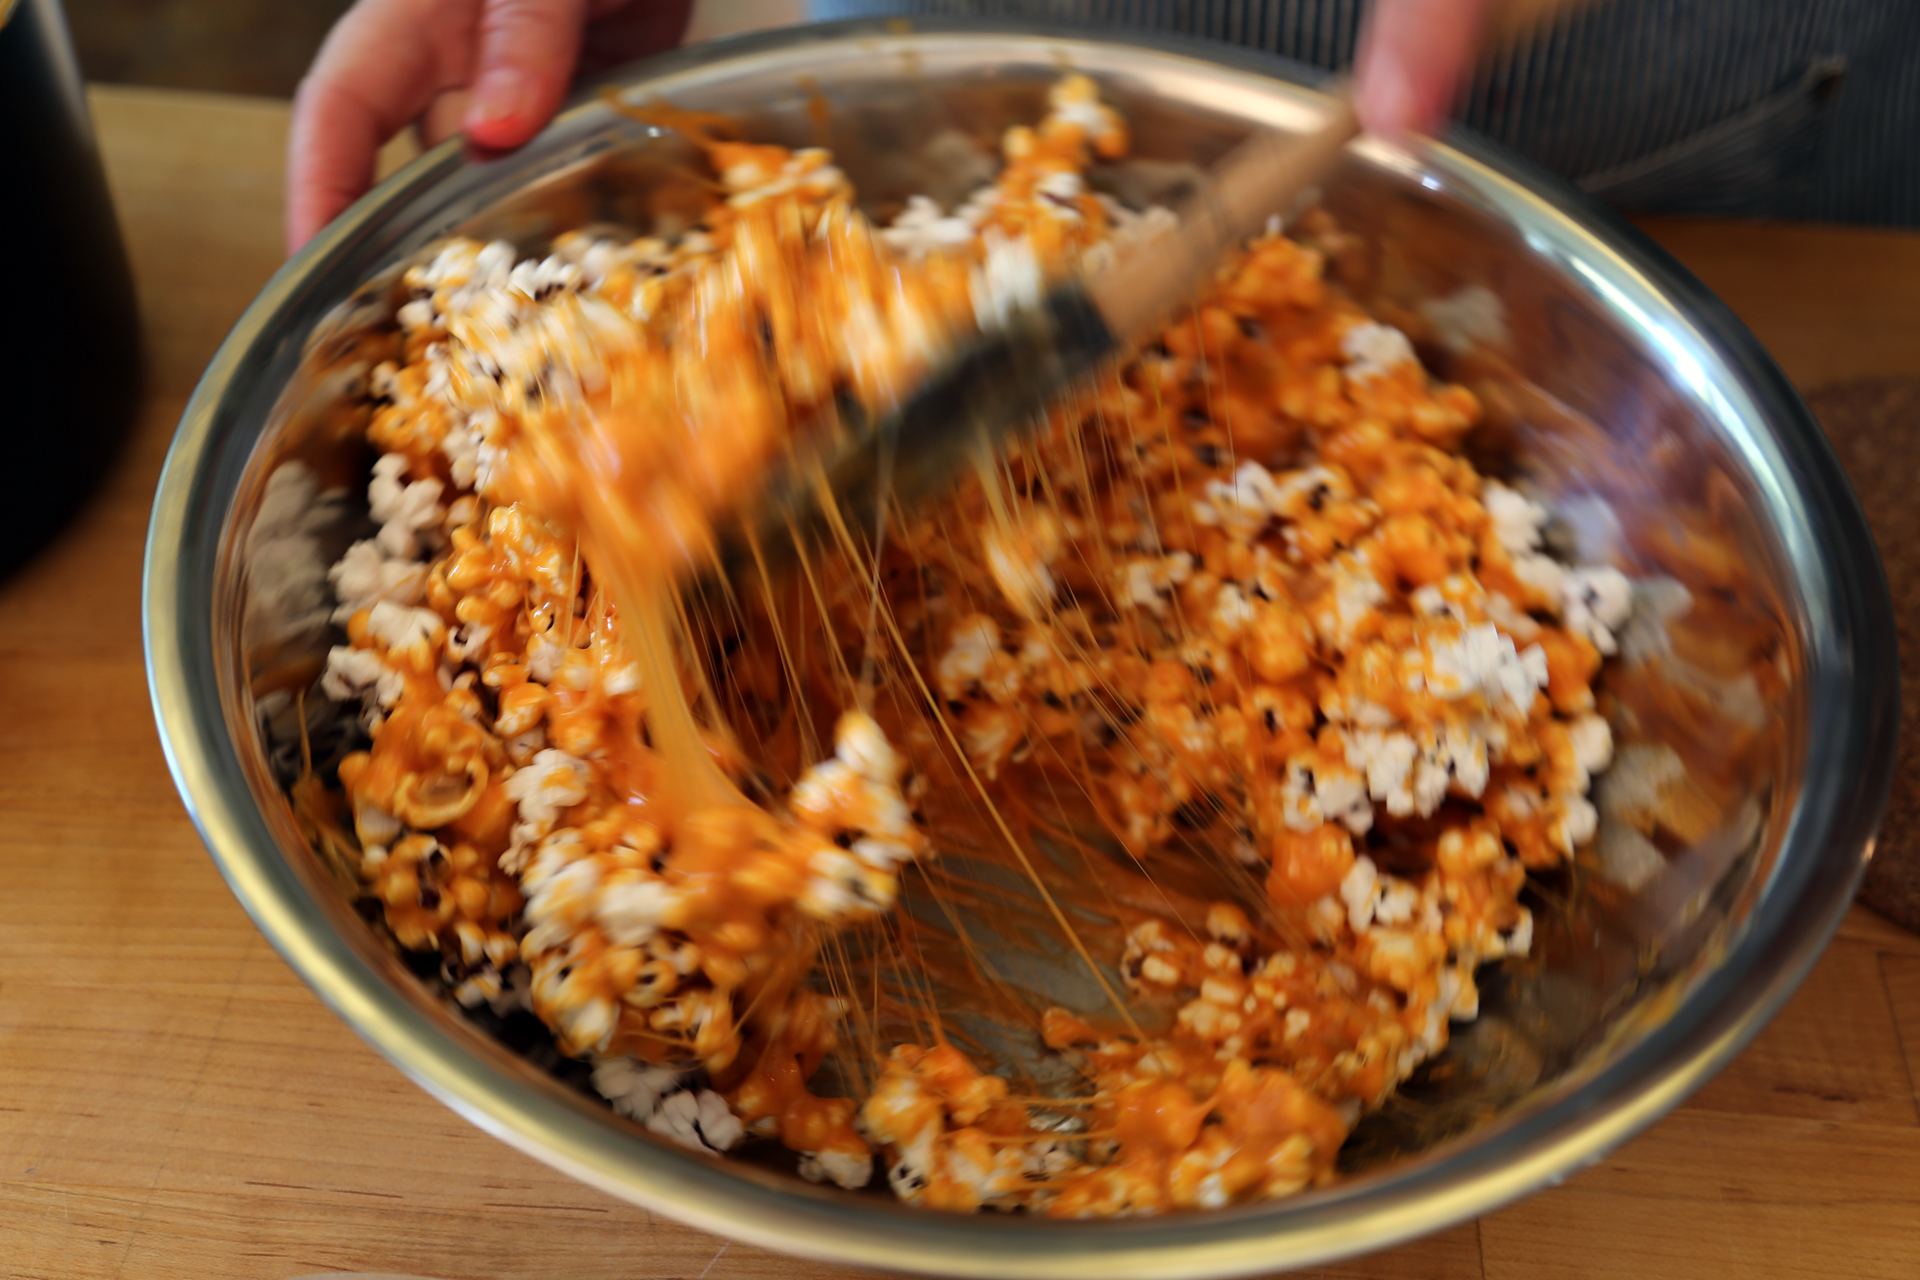 Pour the caramel mixture over the popcorn and stir to completely coat the popcorn.